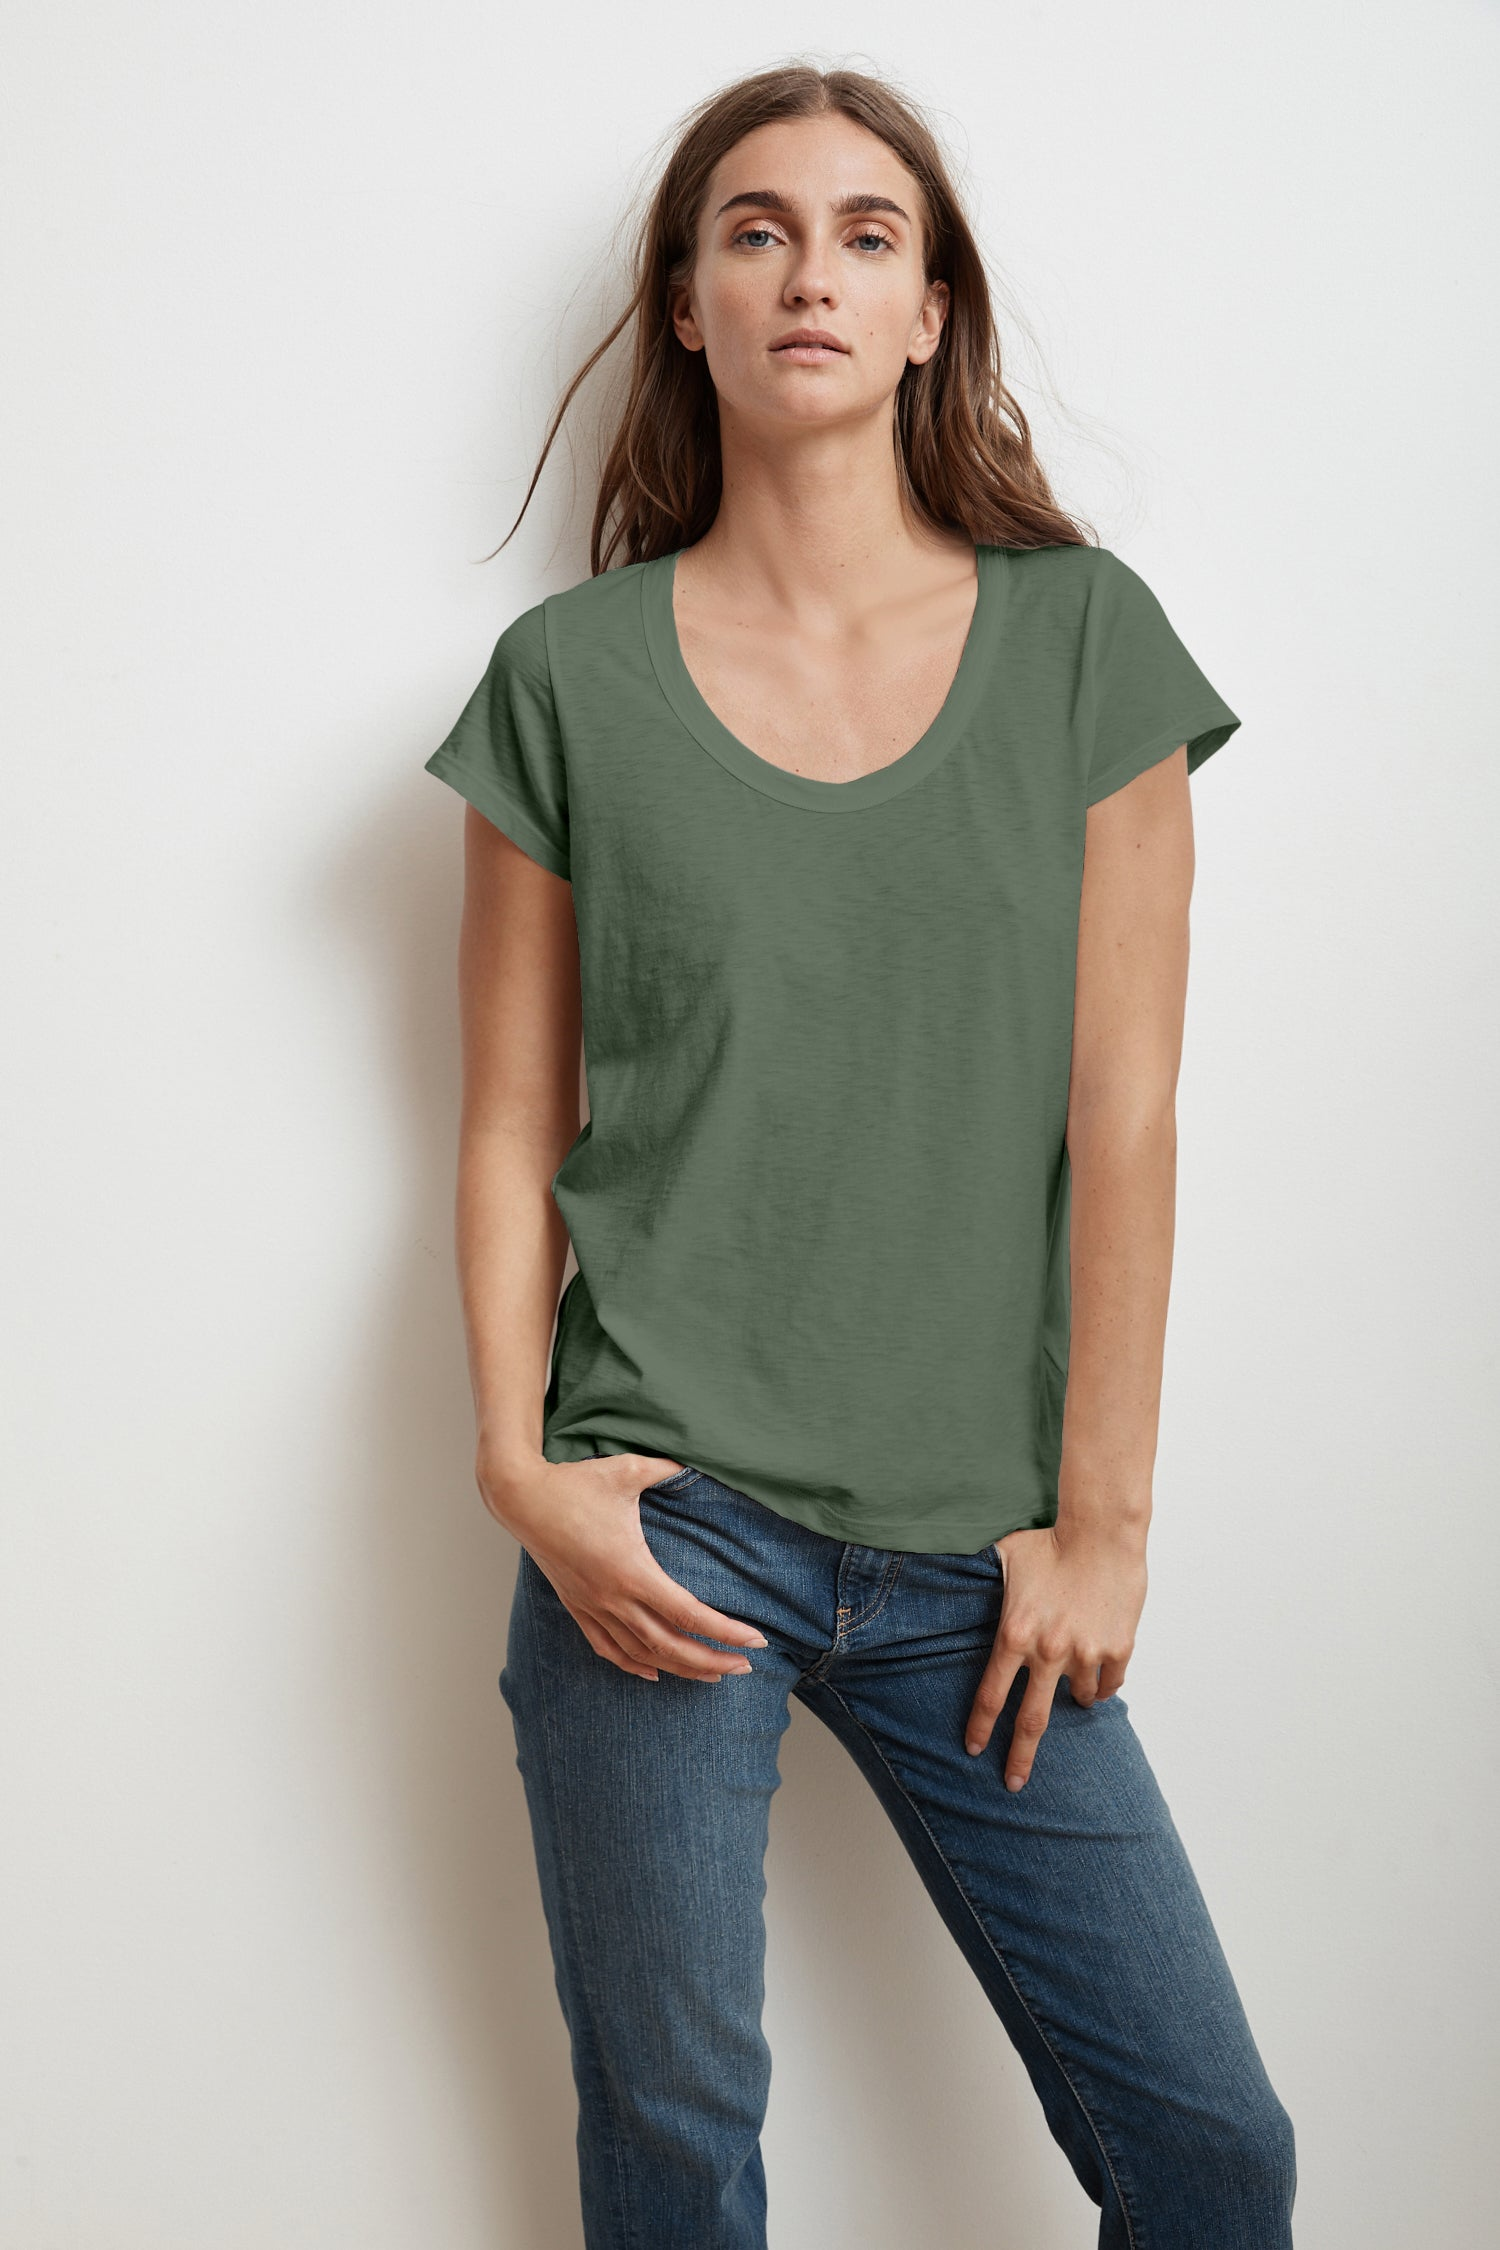 KATIE CITY COTTON SLUB T-SHIRT IN ALOE